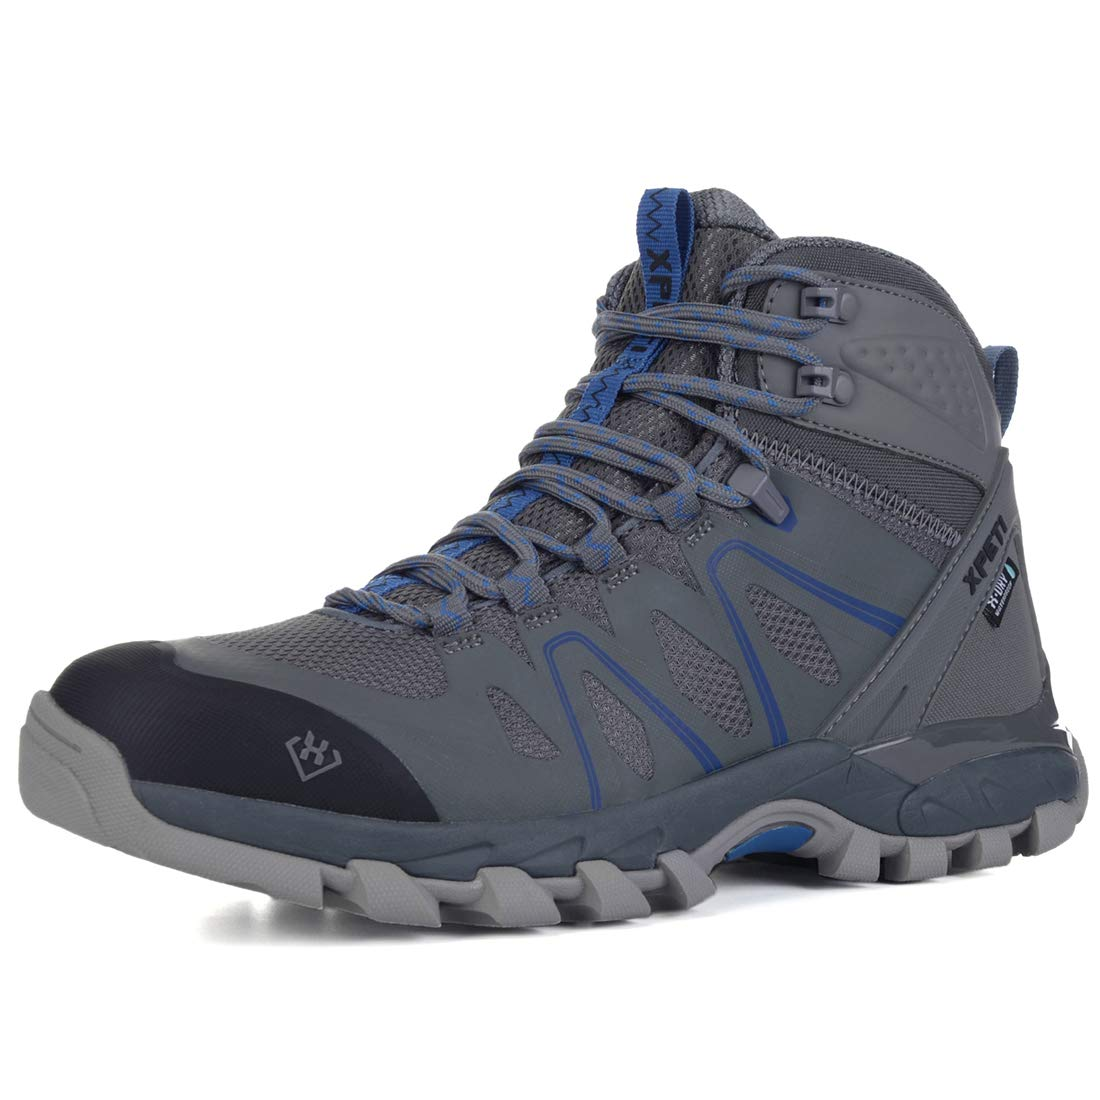 XPETI Men's Wildfire Mid Waterproof Hiking Boot Grey/Blue 10